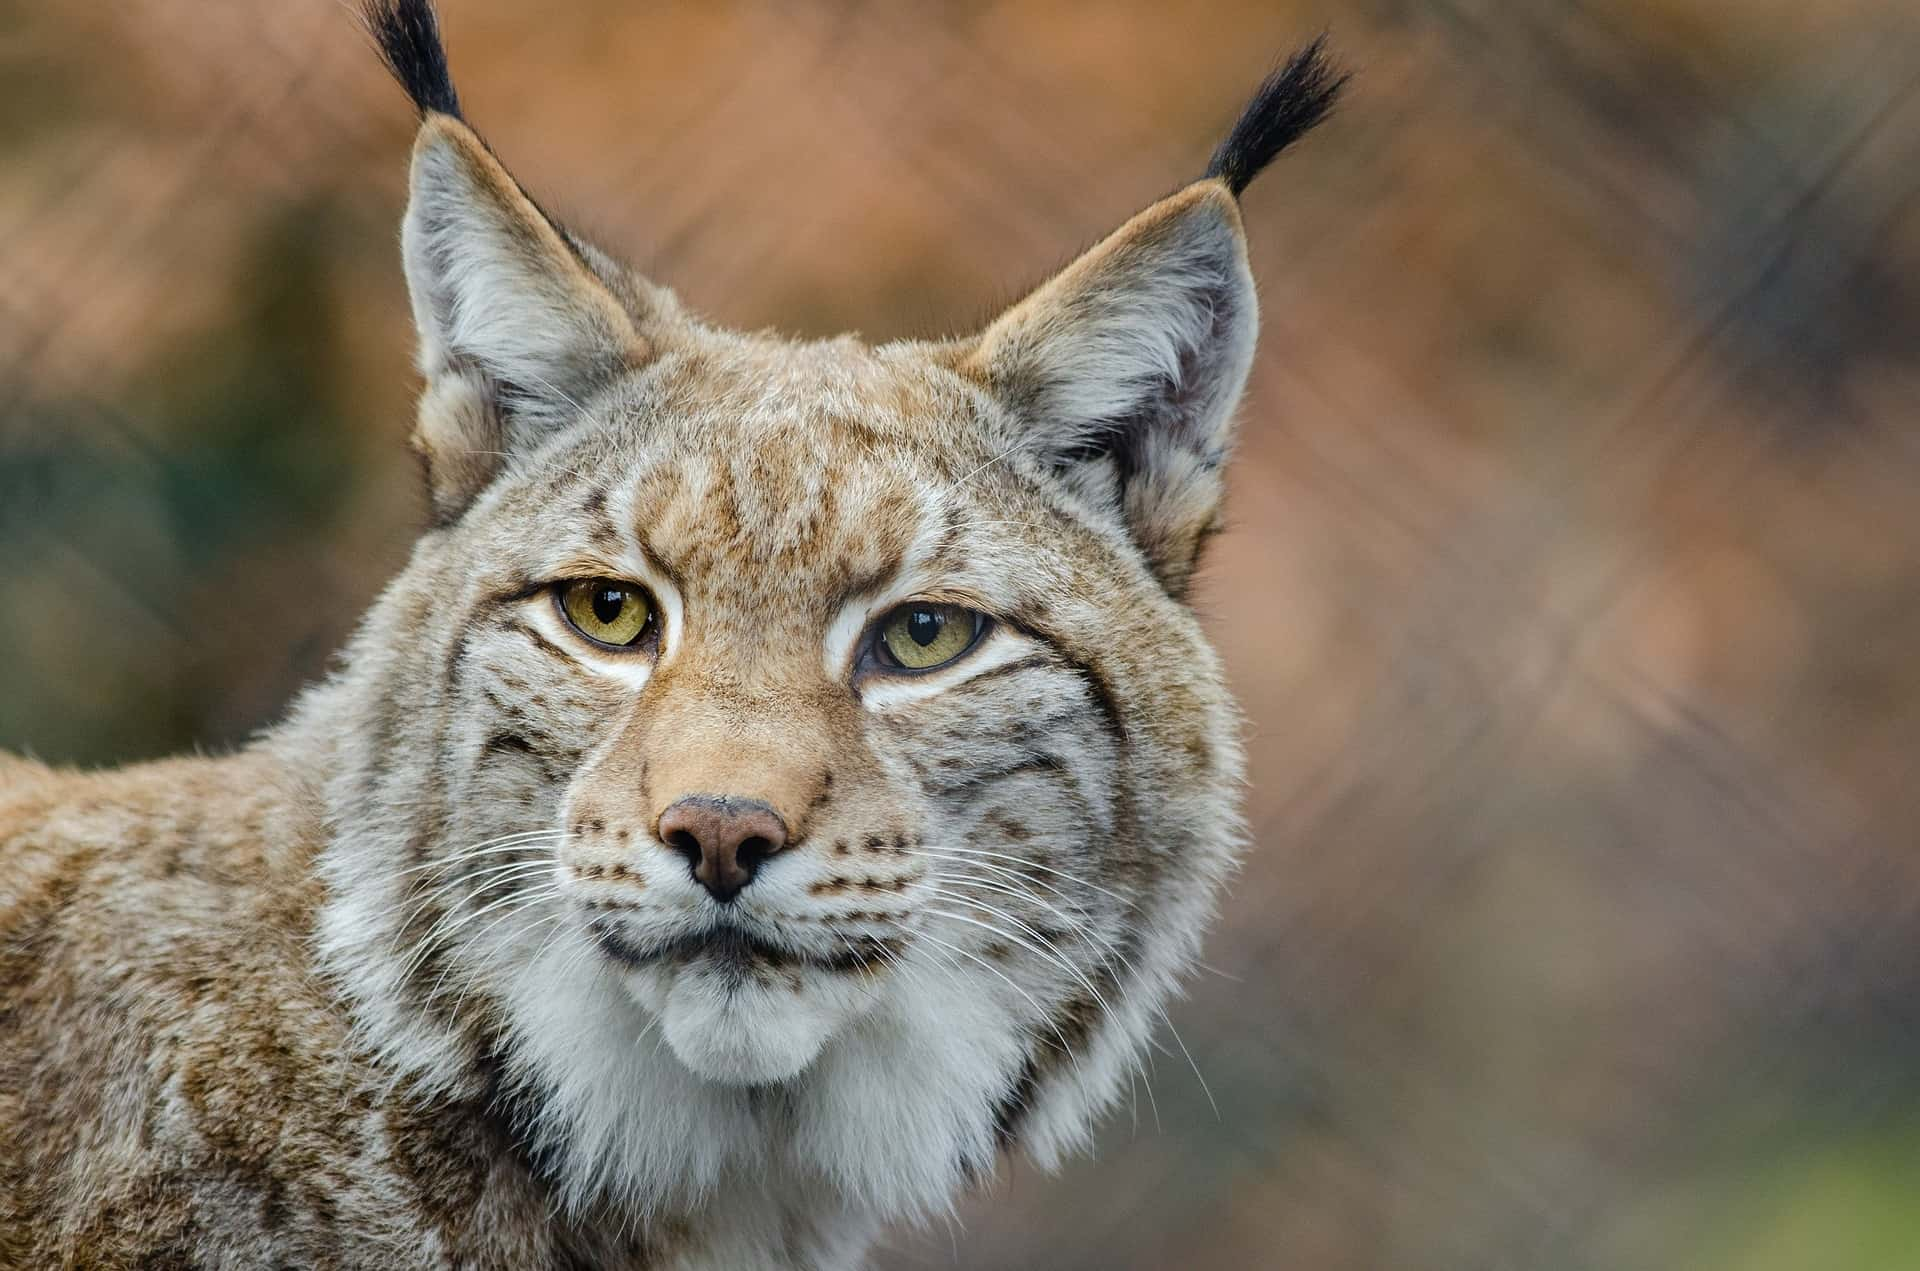 The lynx is recognizable by the feathers above his ears, the sparkling eyes and the stump tail.